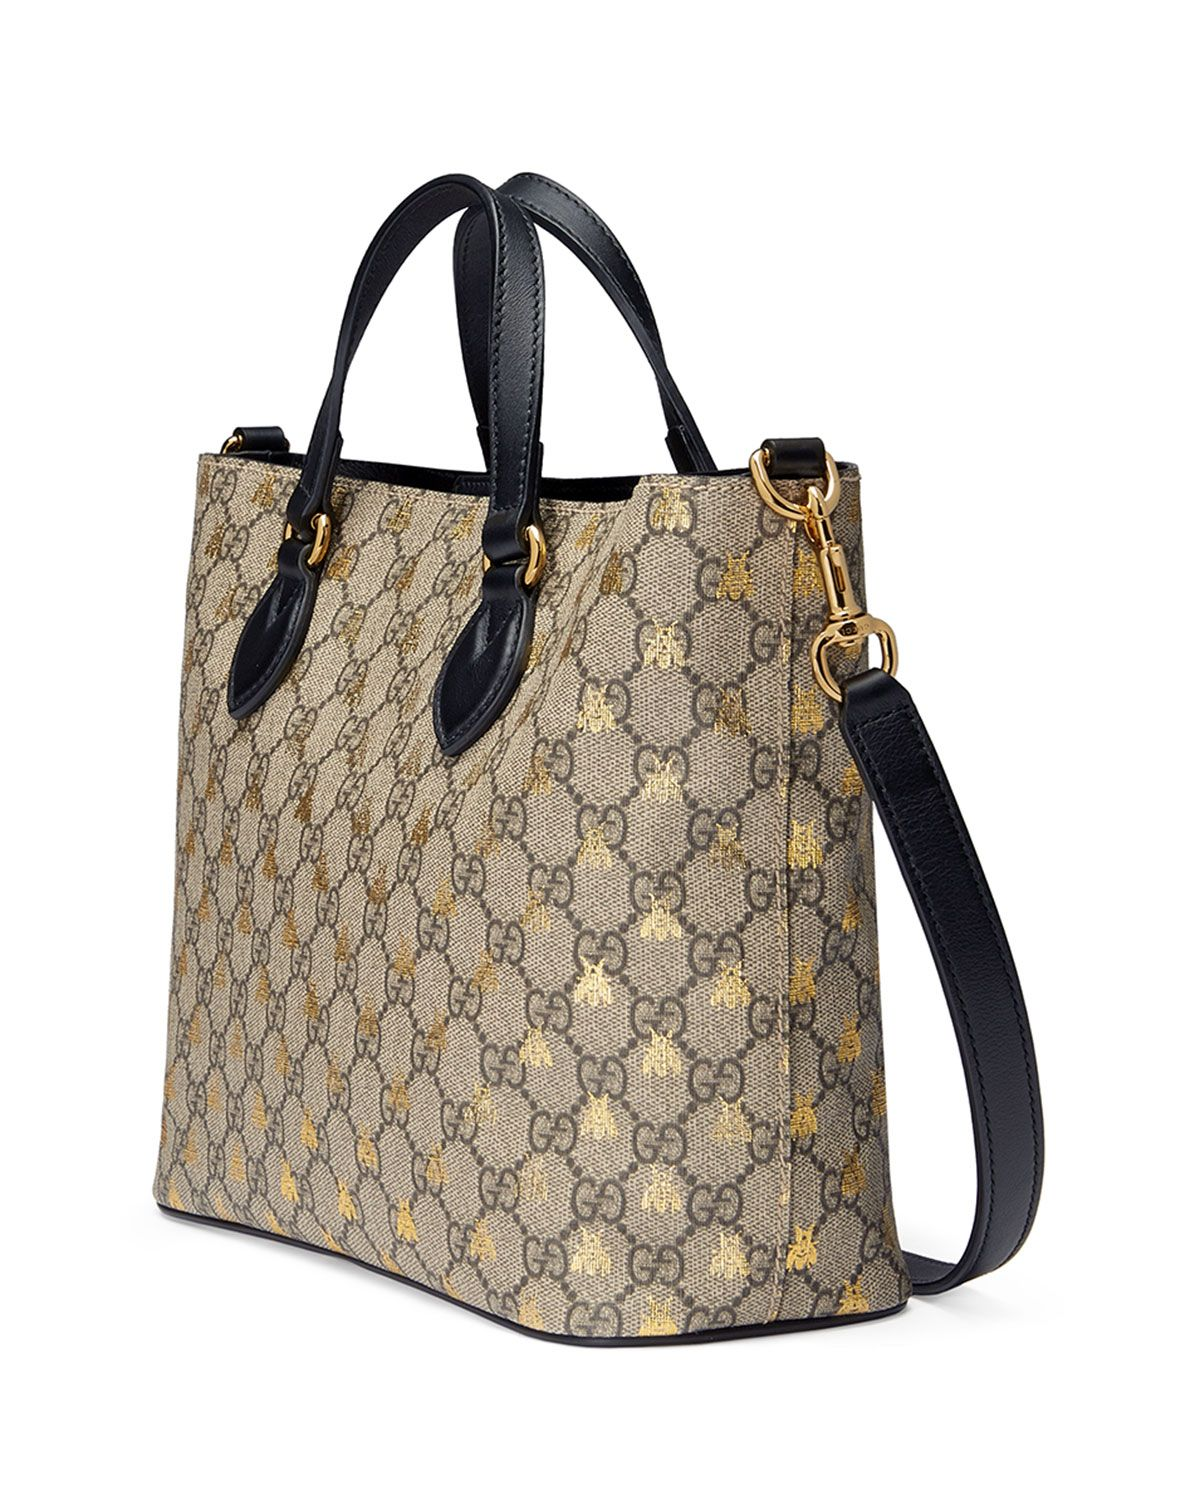 bfce35ed Gucci Bestiary GG Supreme Tote Bag | Clothes, bags, and shoes ...